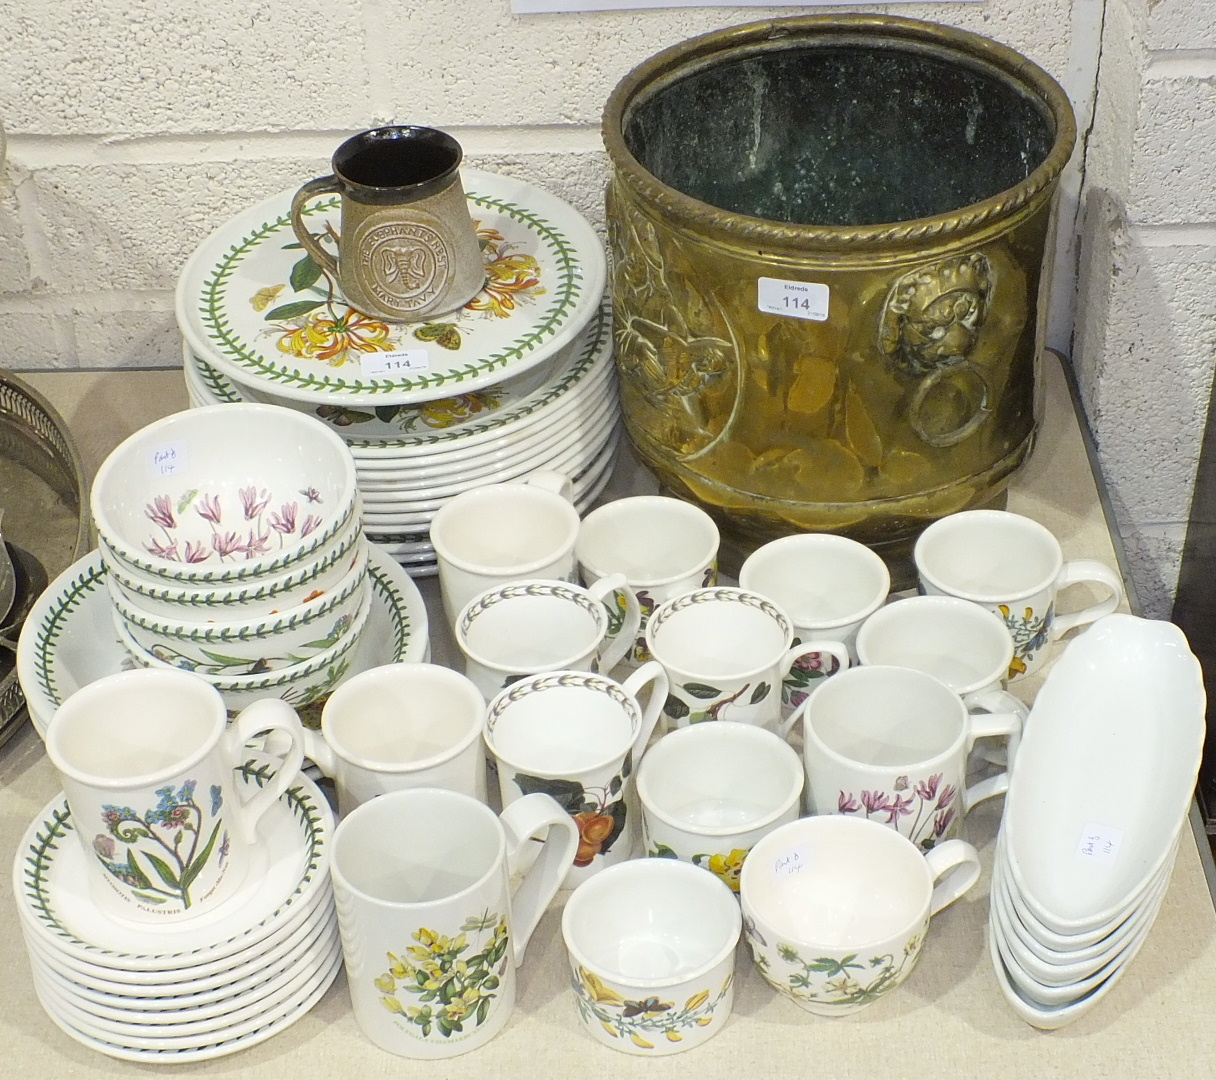 Lot 114 - Approximately forty pieces of Portmeirion 'Botanic Garden' tea and dinner ware and a brass